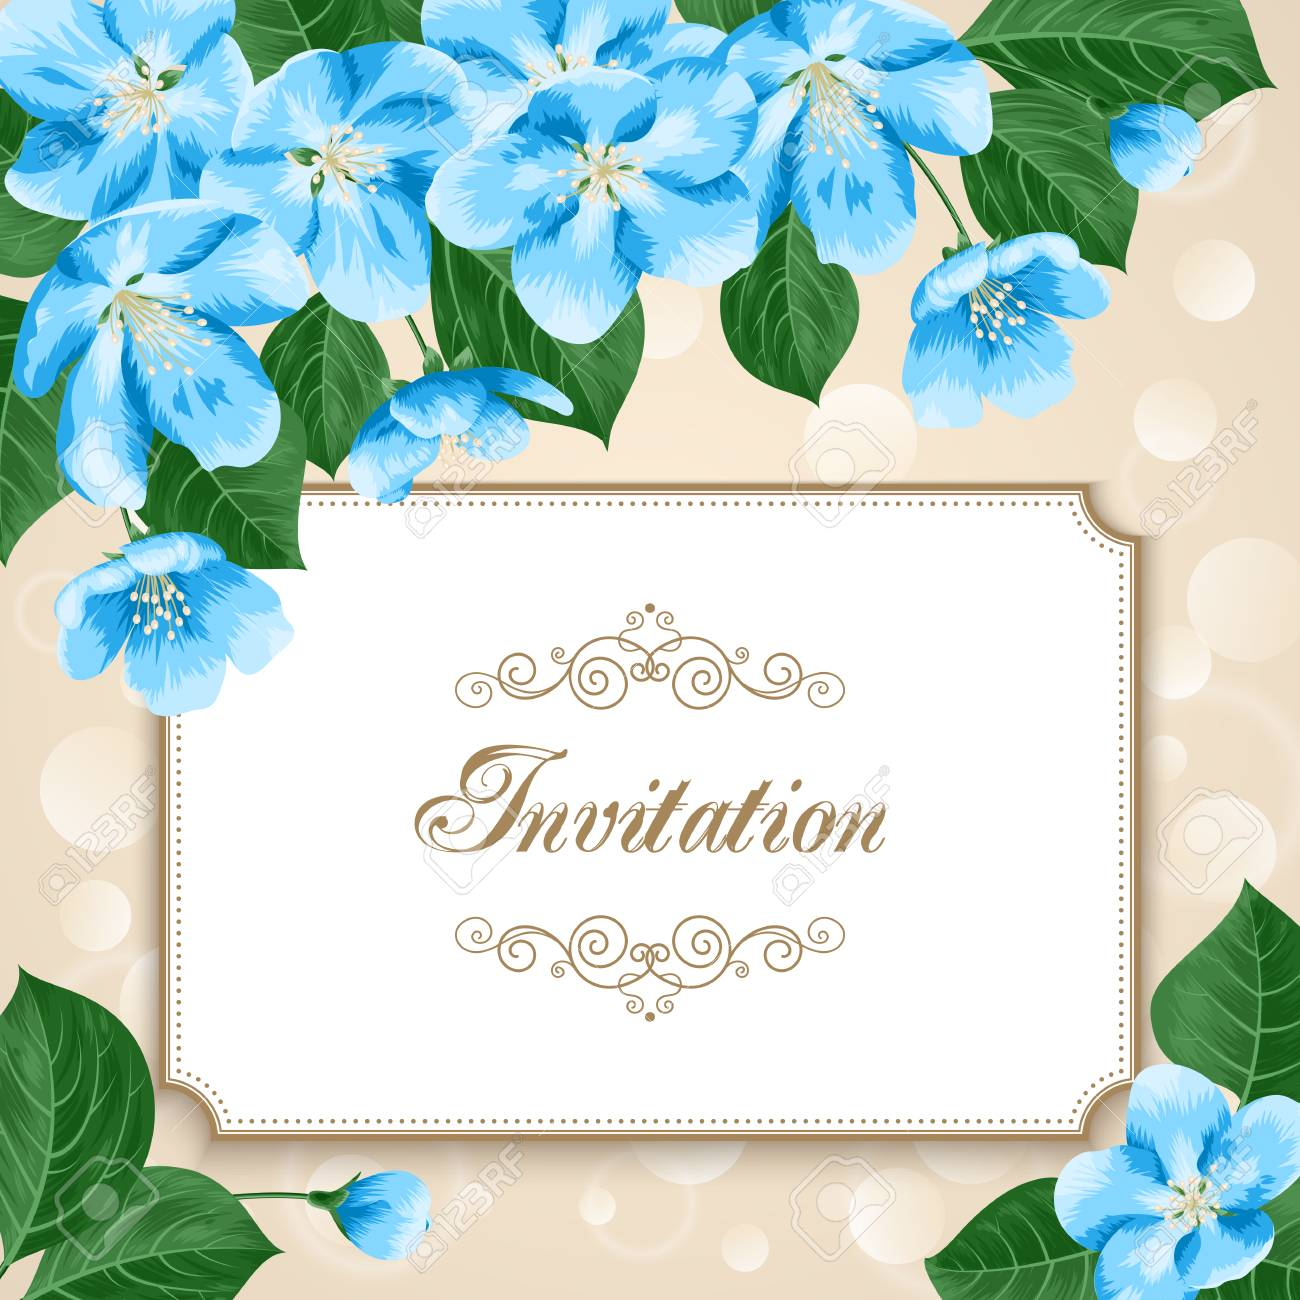 Vintage Floral Invitation Template With Hand Drawn Flowers Apple